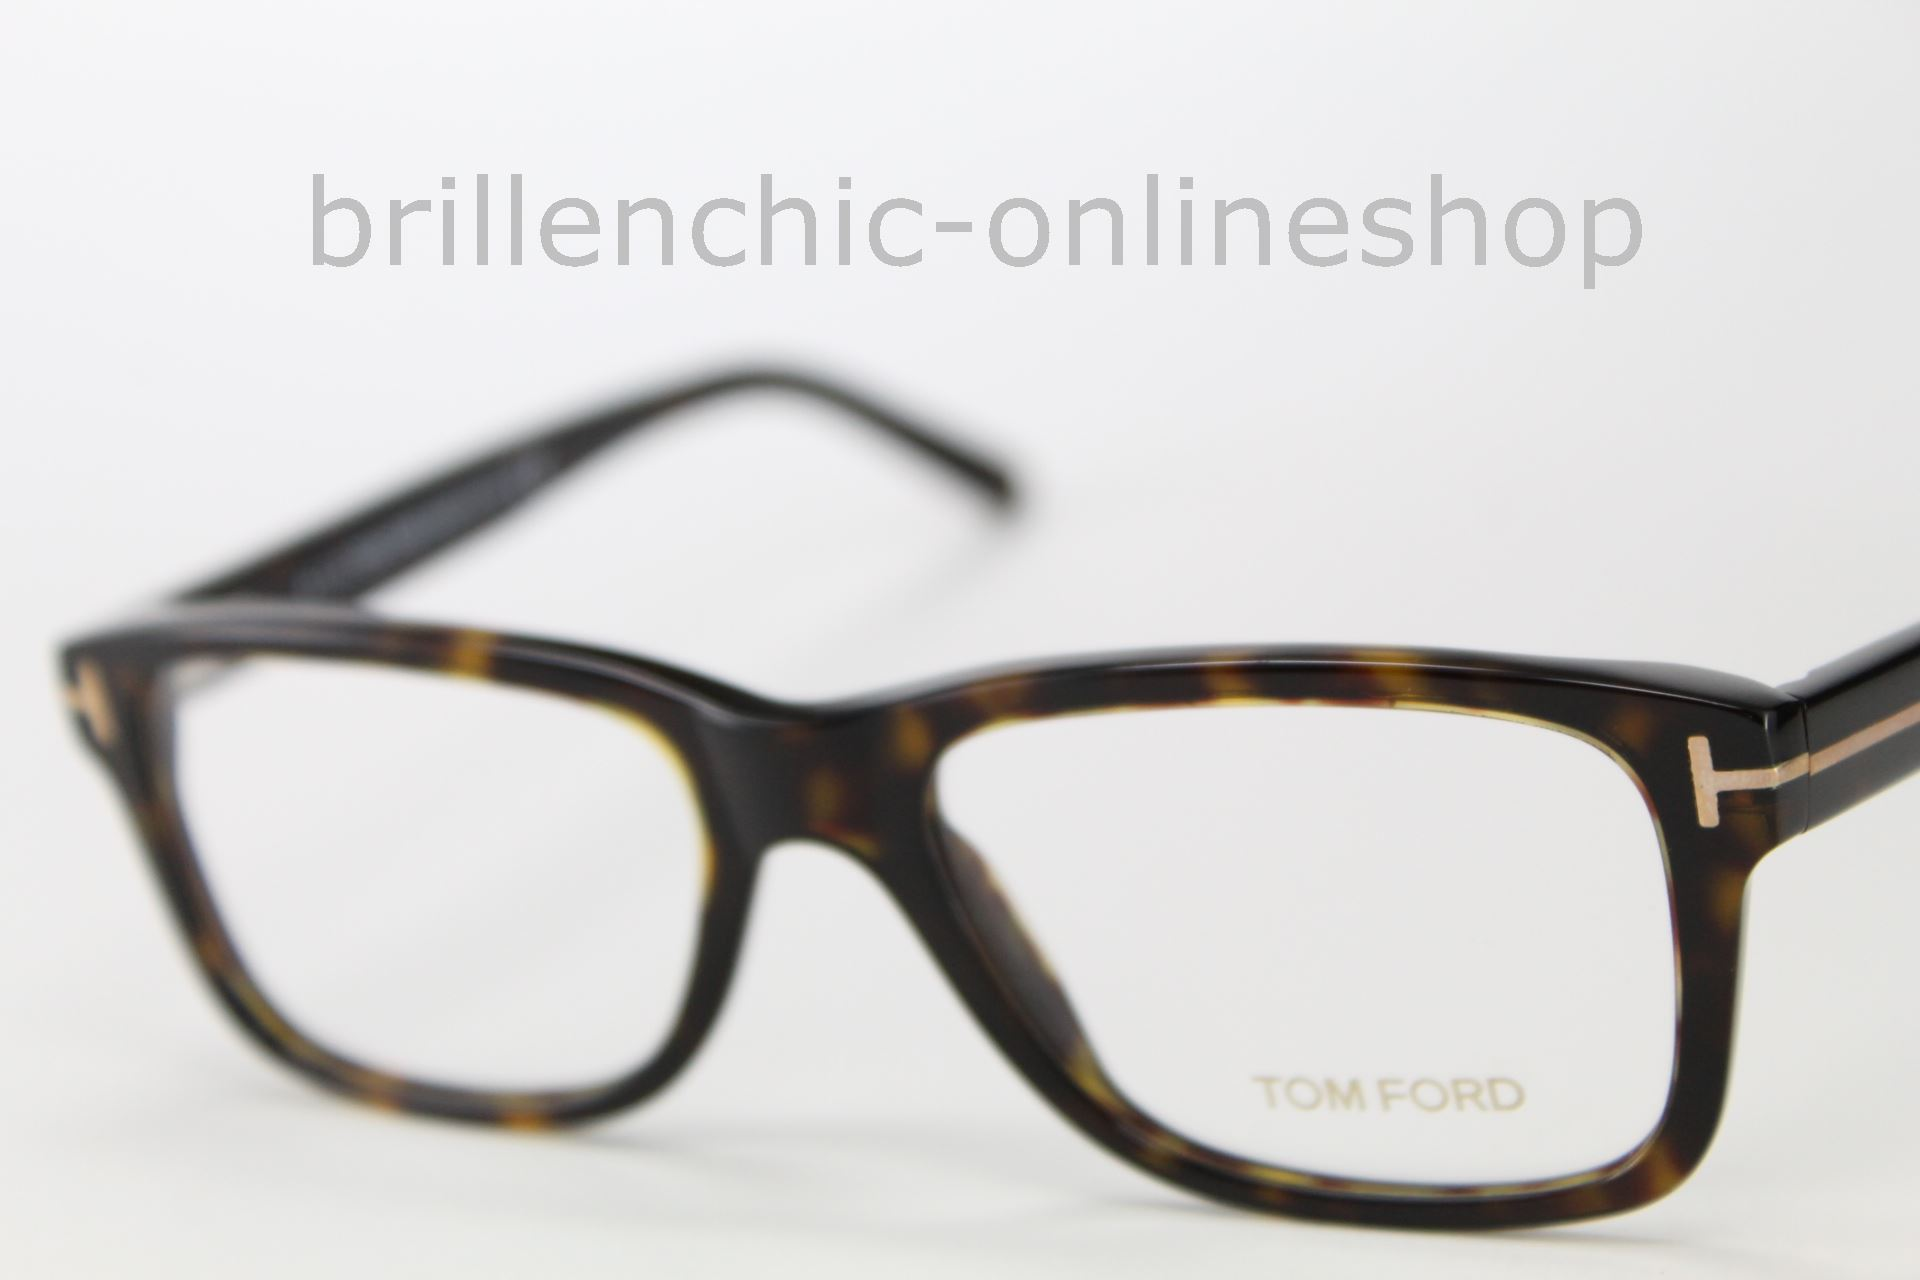 Original Tom Ford Brille Brillenfassung TF 5163 Farbe 052 braun ...